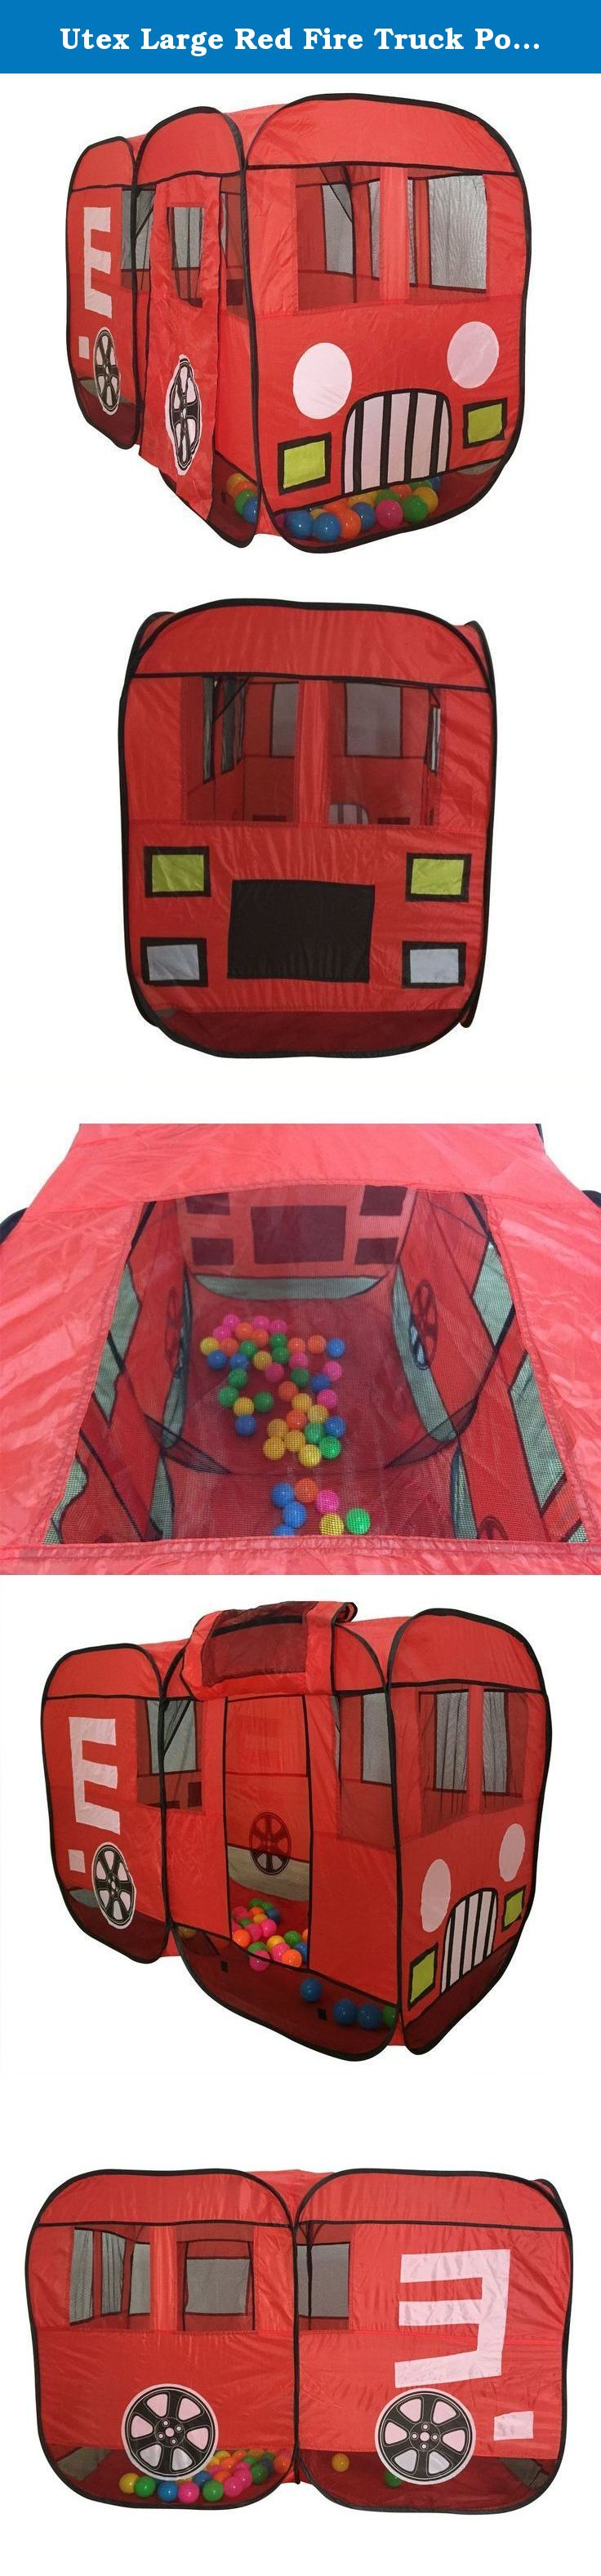 Utex Large Red Fire Truck Pop-Up Play Tent - Fire Engine with Side Door Entrance for Boys or Girls for Indoor or Outdoor Use. This Exciting Fire Truck Play ... & Utex Large Red Fire Truck Pop-Up Play Tent - Fire Engine with Side ...